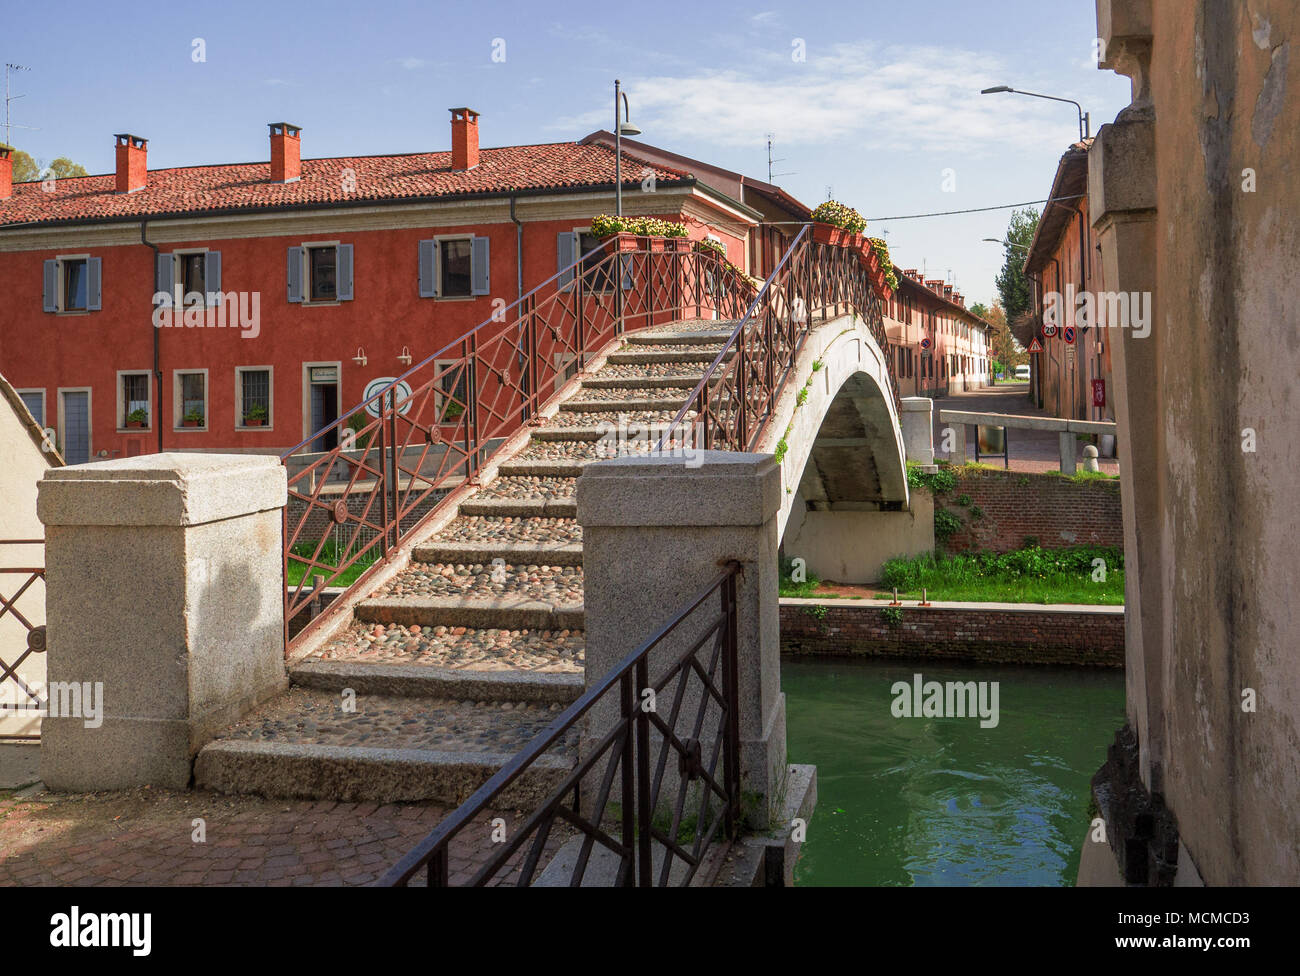 canal crossed by a cobblestone bridge, to move the houses of the village in the province of Milan, Italy - Stock Image